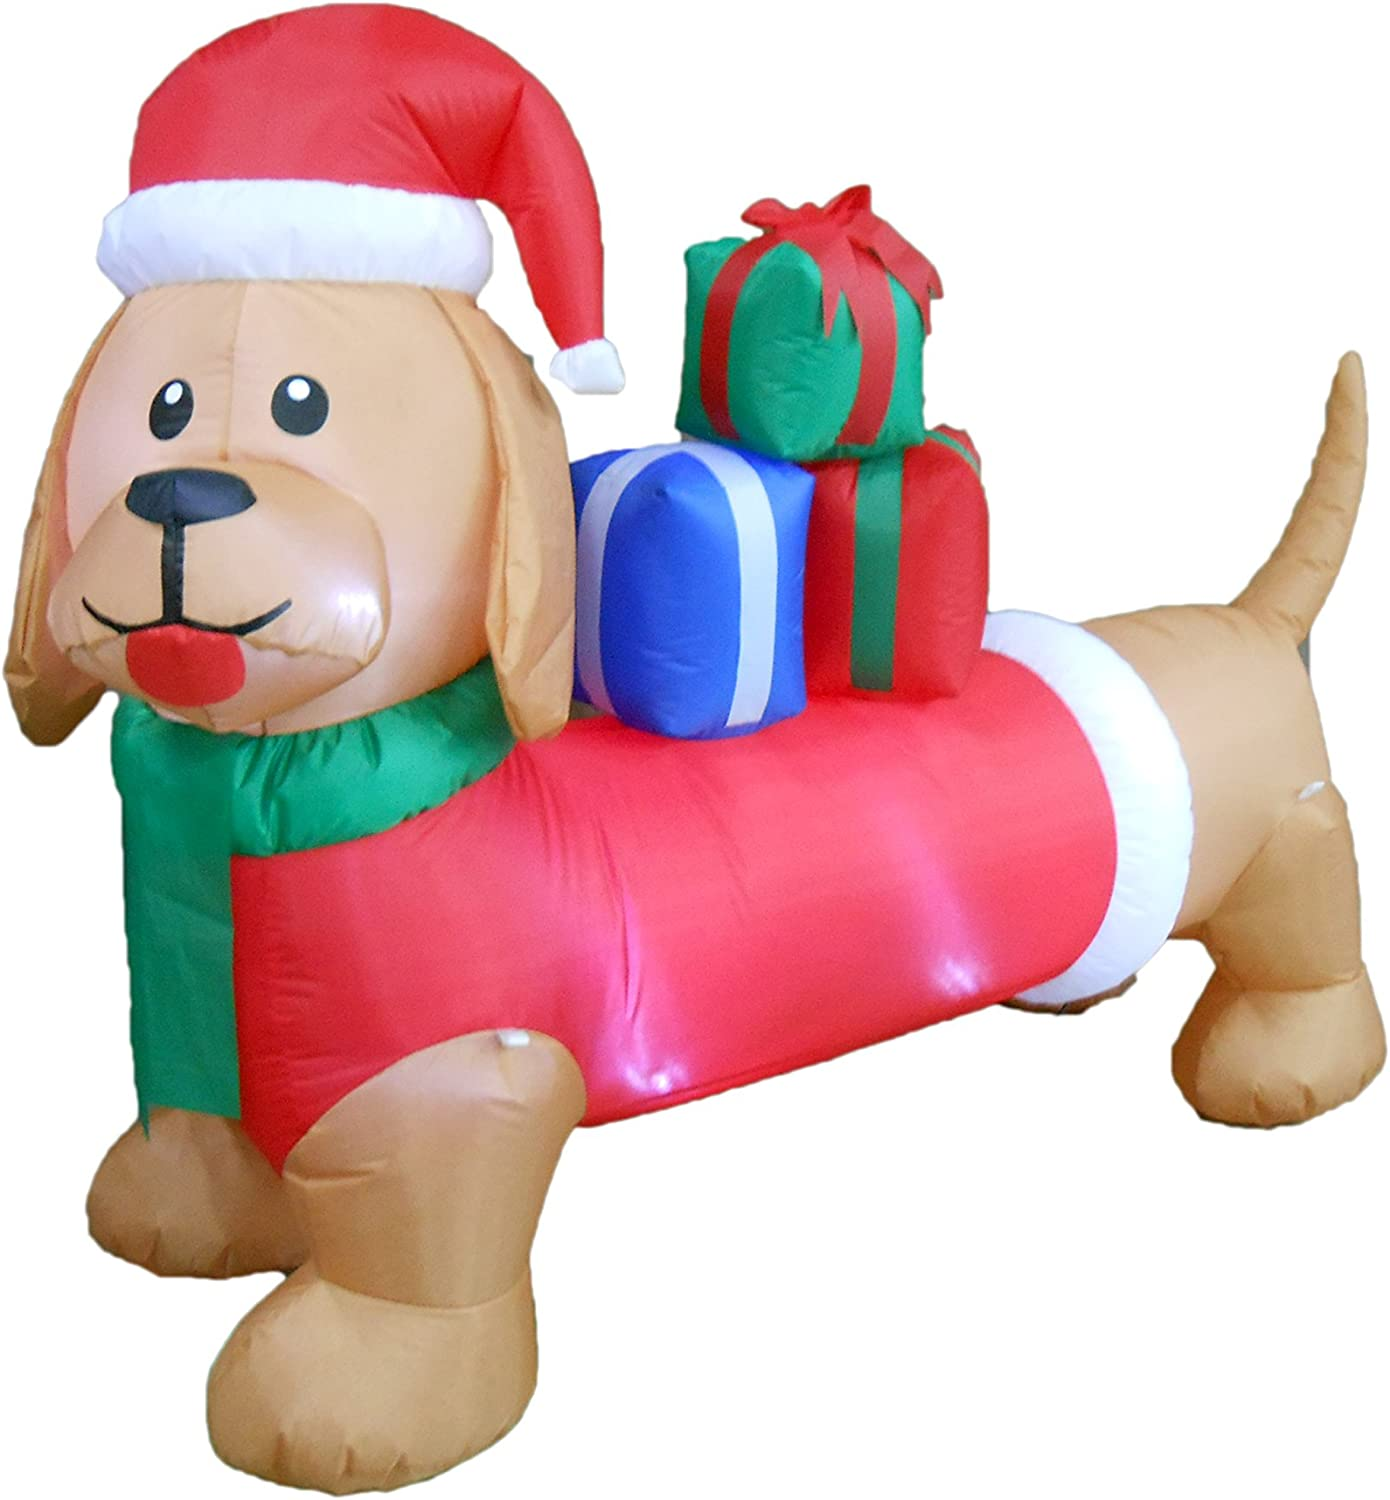 BZB Goods 6 Foot Long Christmas Inflatable Dog Puppy Gift Box LED Lights Lighted Blowup Party Decoration for Outdoor Indoor Home Garden Family Prop Yard